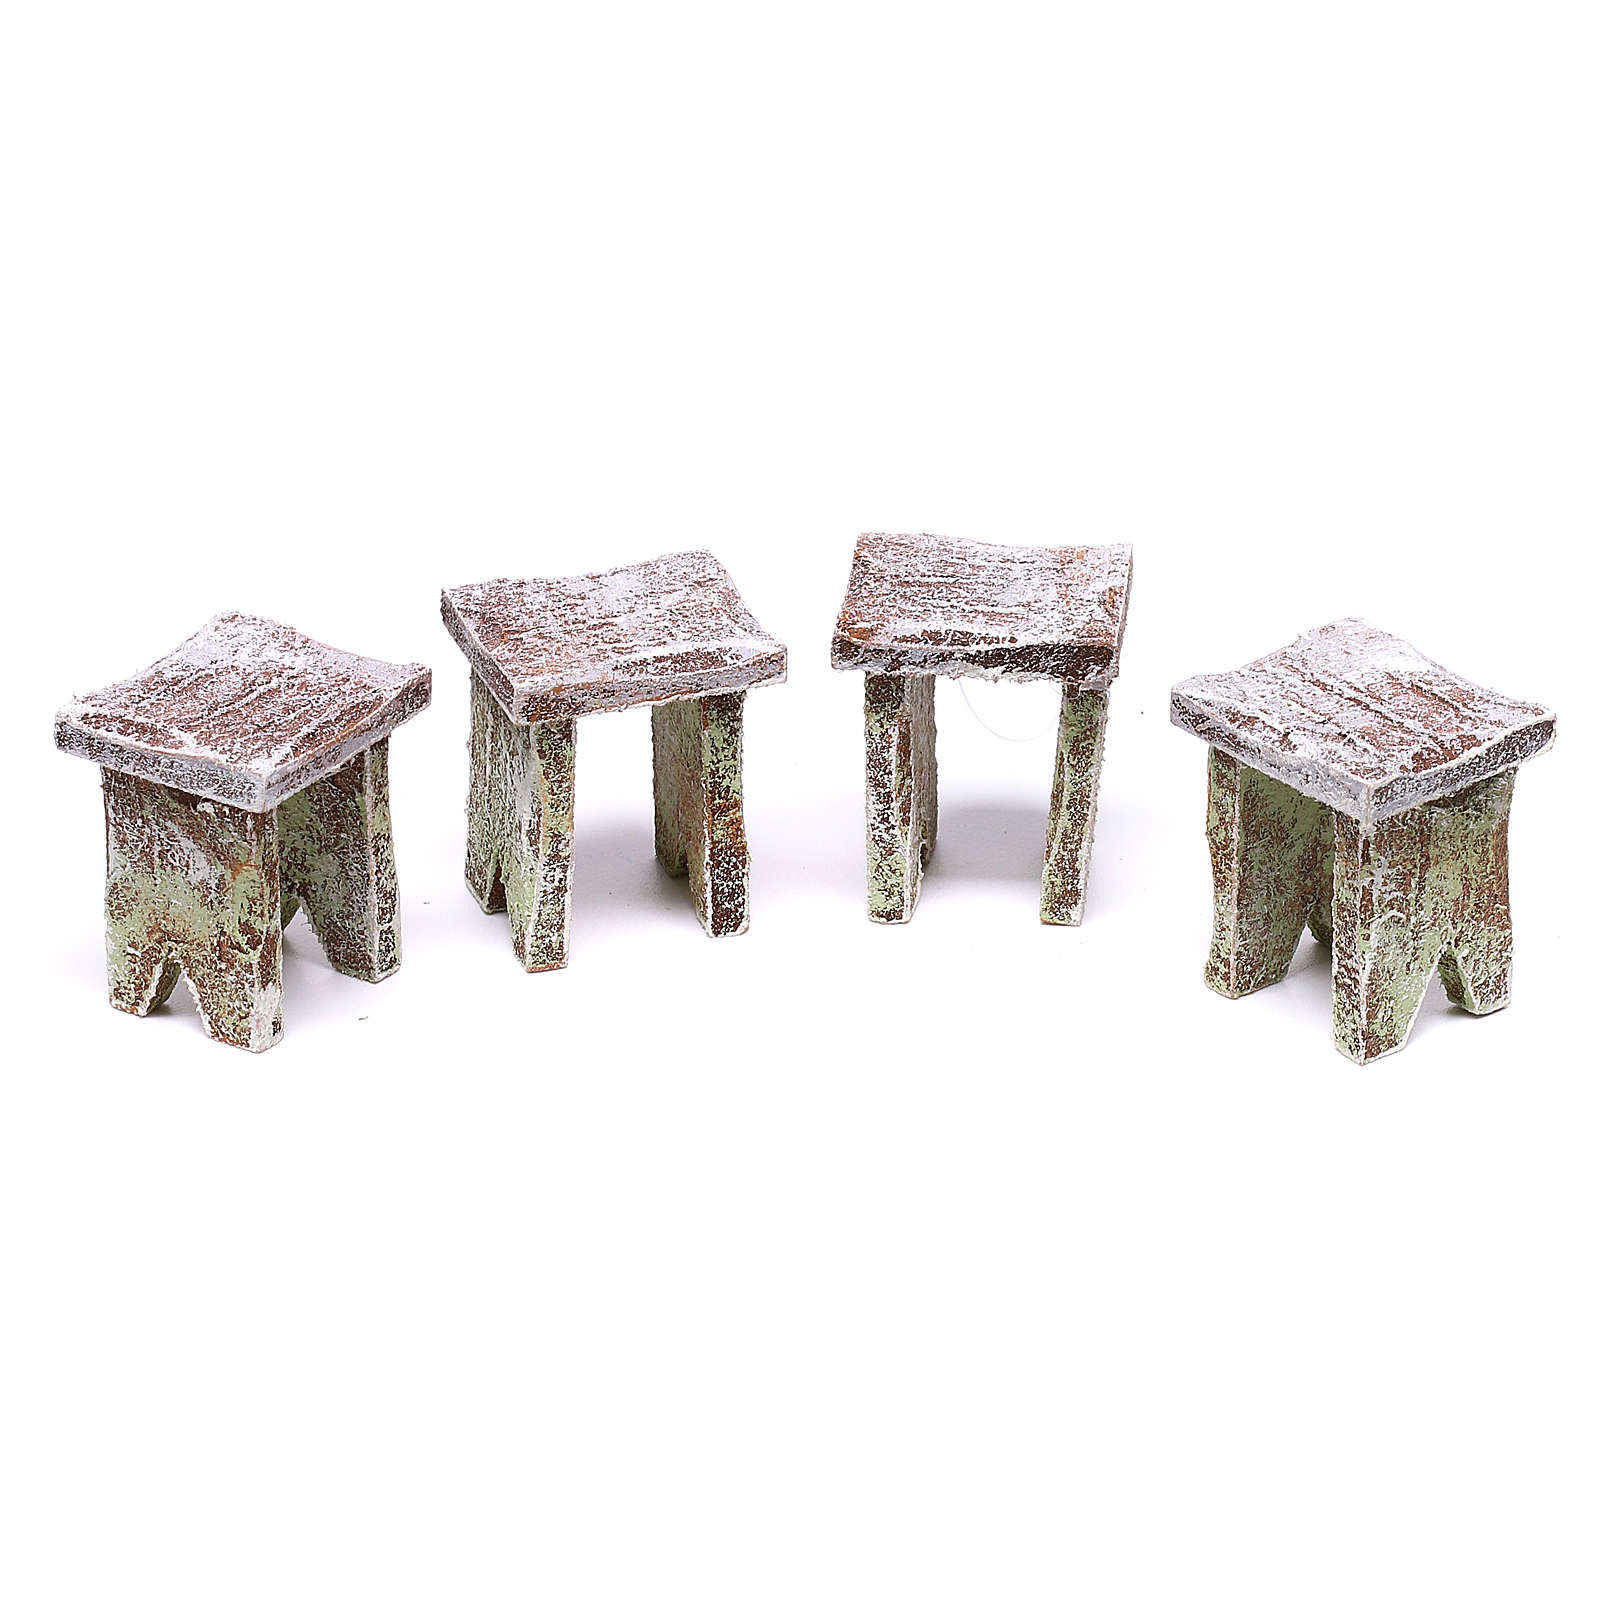 Mini table with cards and 4 benches 5x5x5 cm, for 12 cm nativity 4